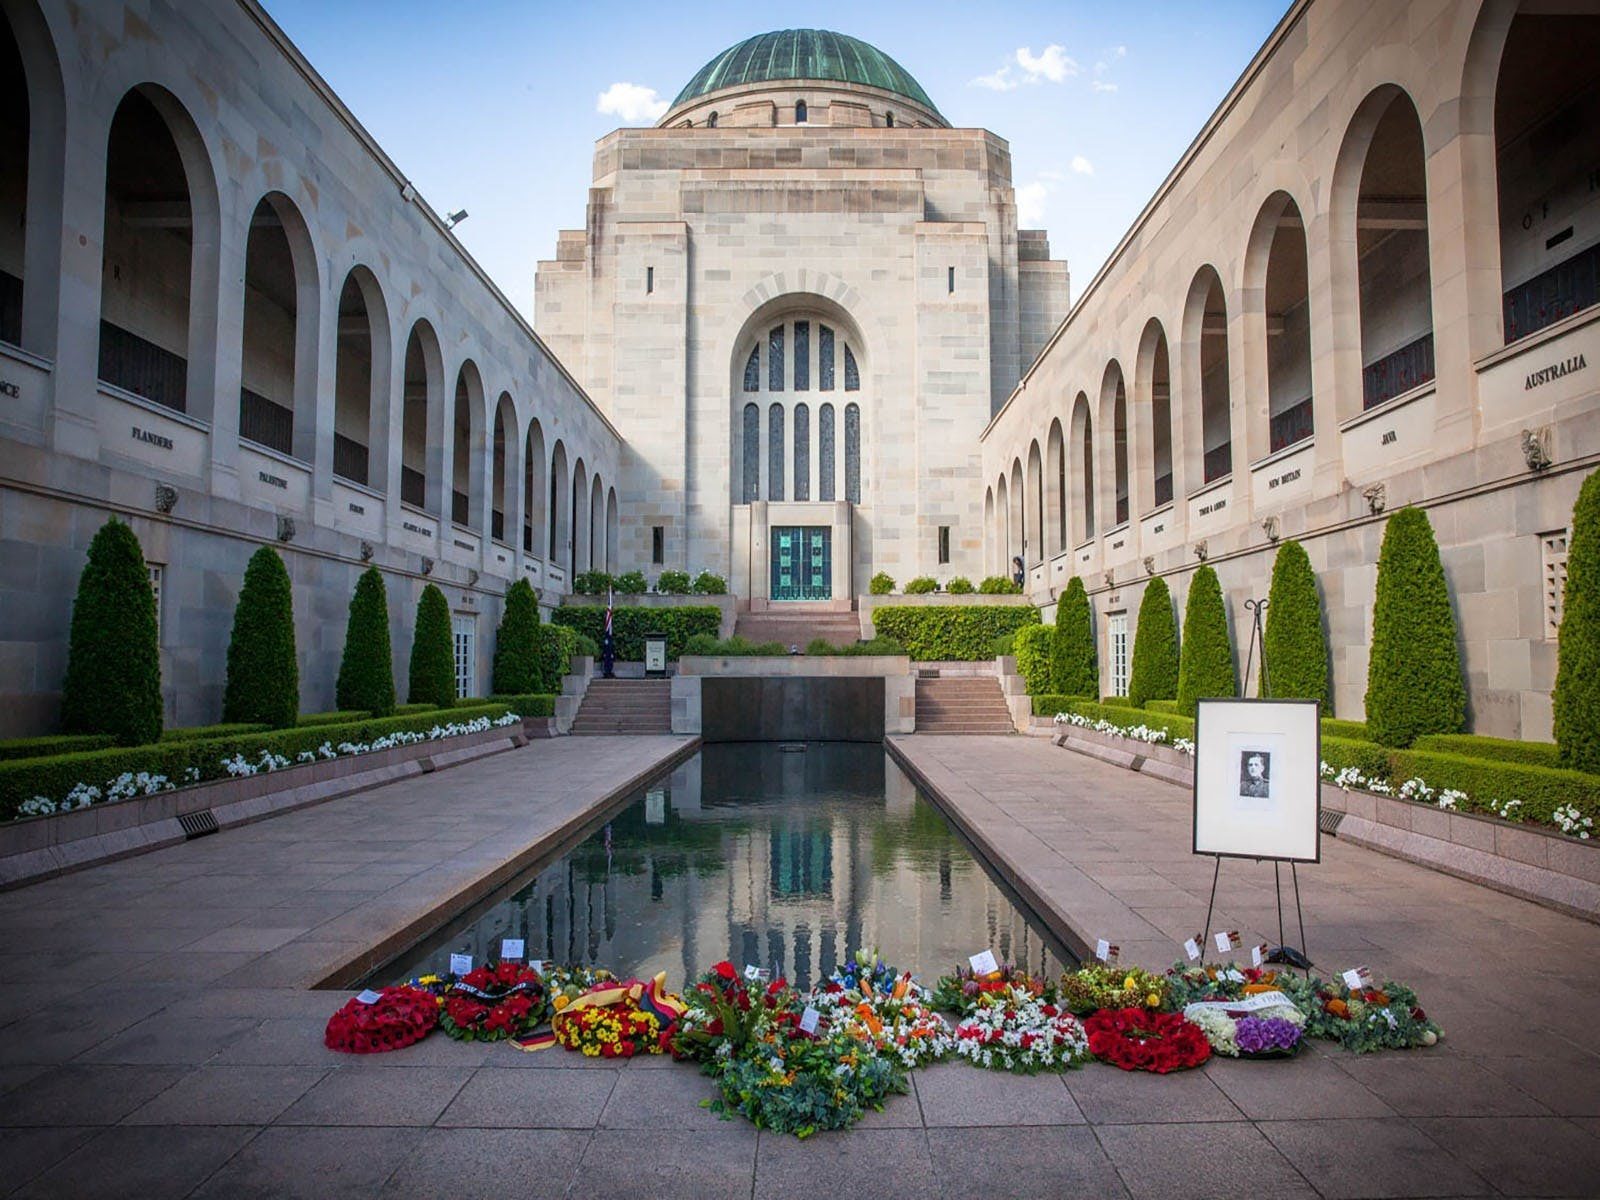 Pool of Reflection within the Commemorative Area of the Australian War Memorial